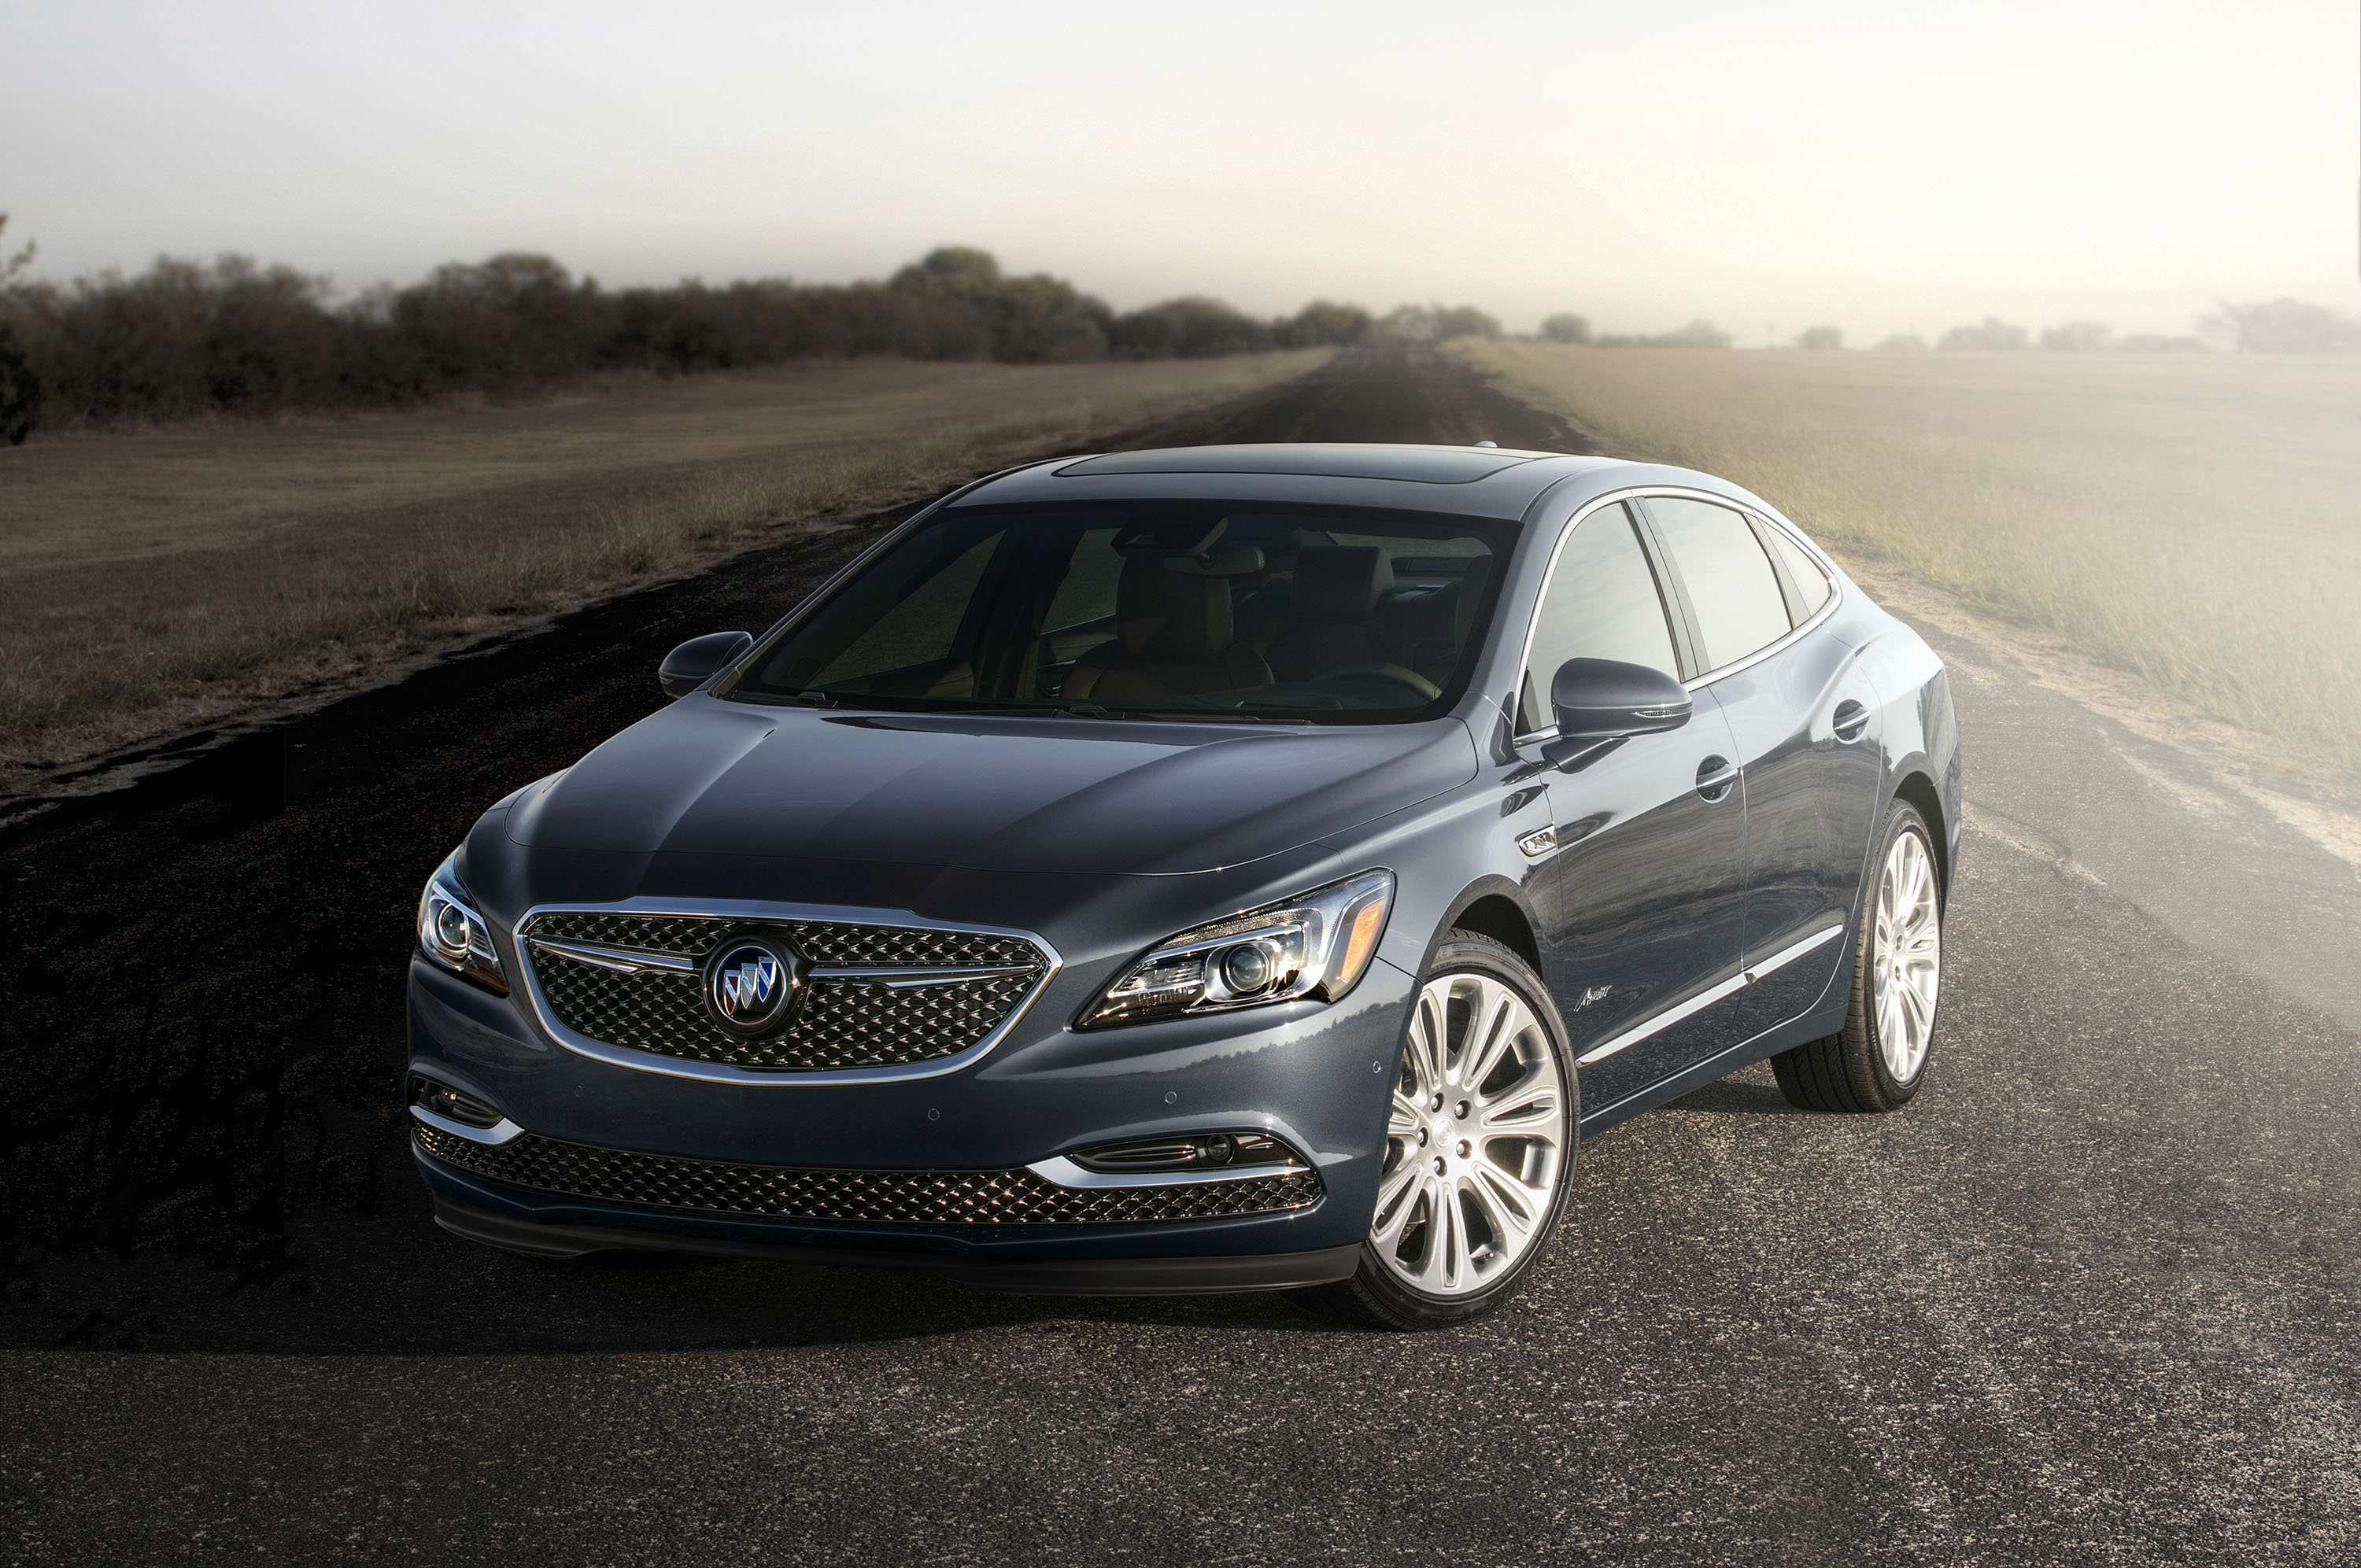 66 Gallery of New Buick Lacrosse 2019 Reviews Concept Redesign And Review Specs with New Buick Lacrosse 2019 Reviews Concept Redesign And Review